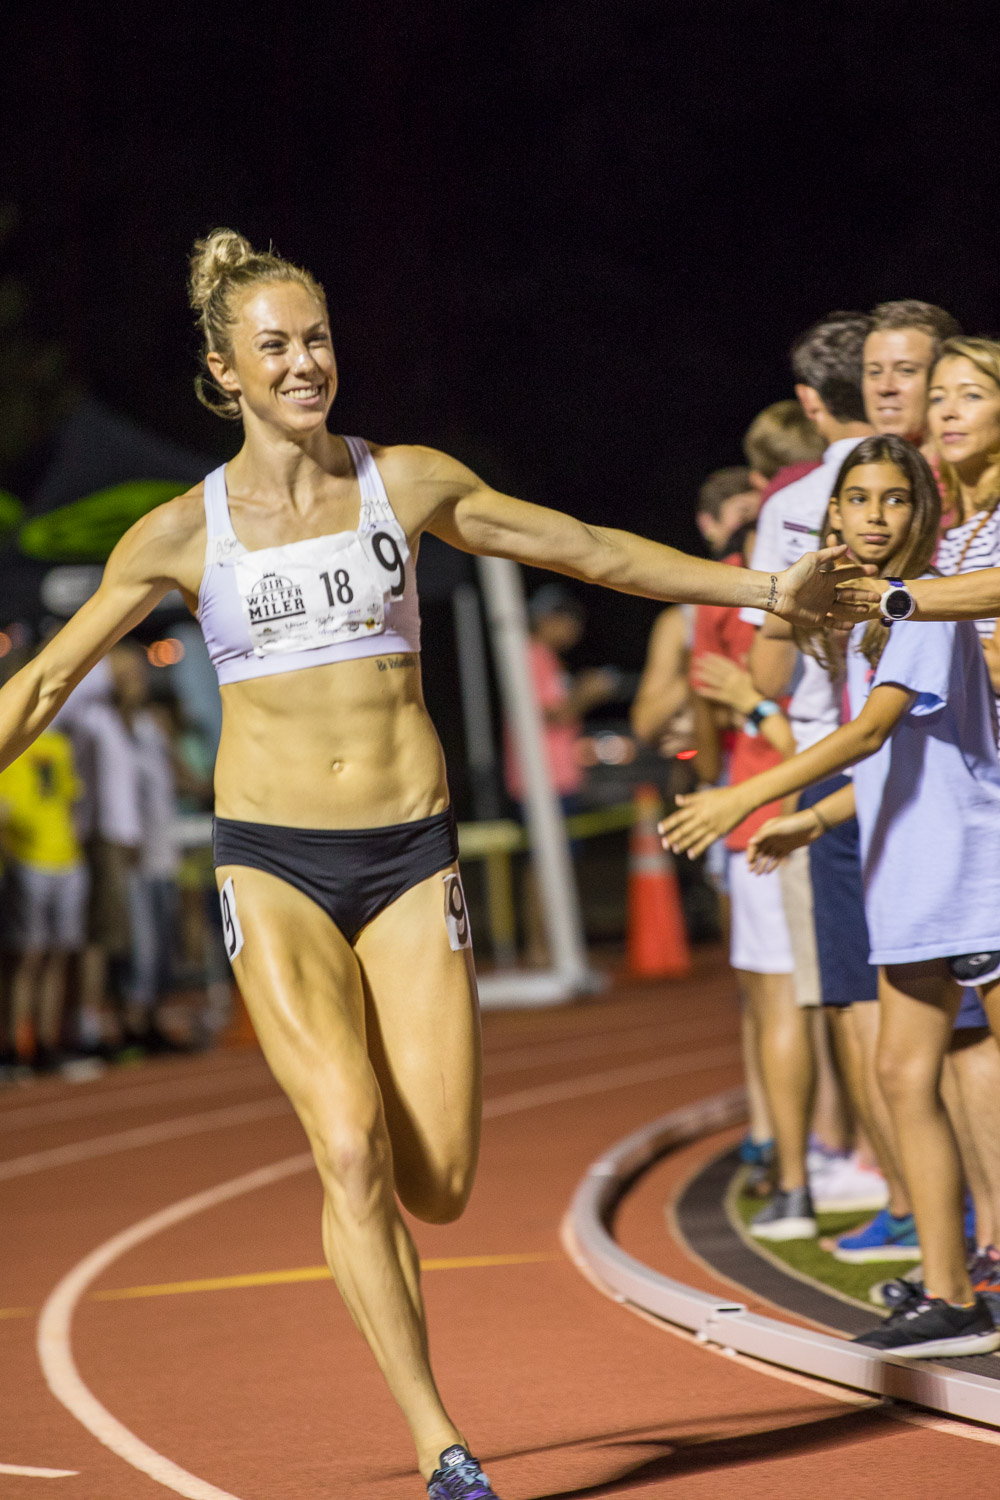 Kate Van Buskirk gives high fives before the start of the women's elites race